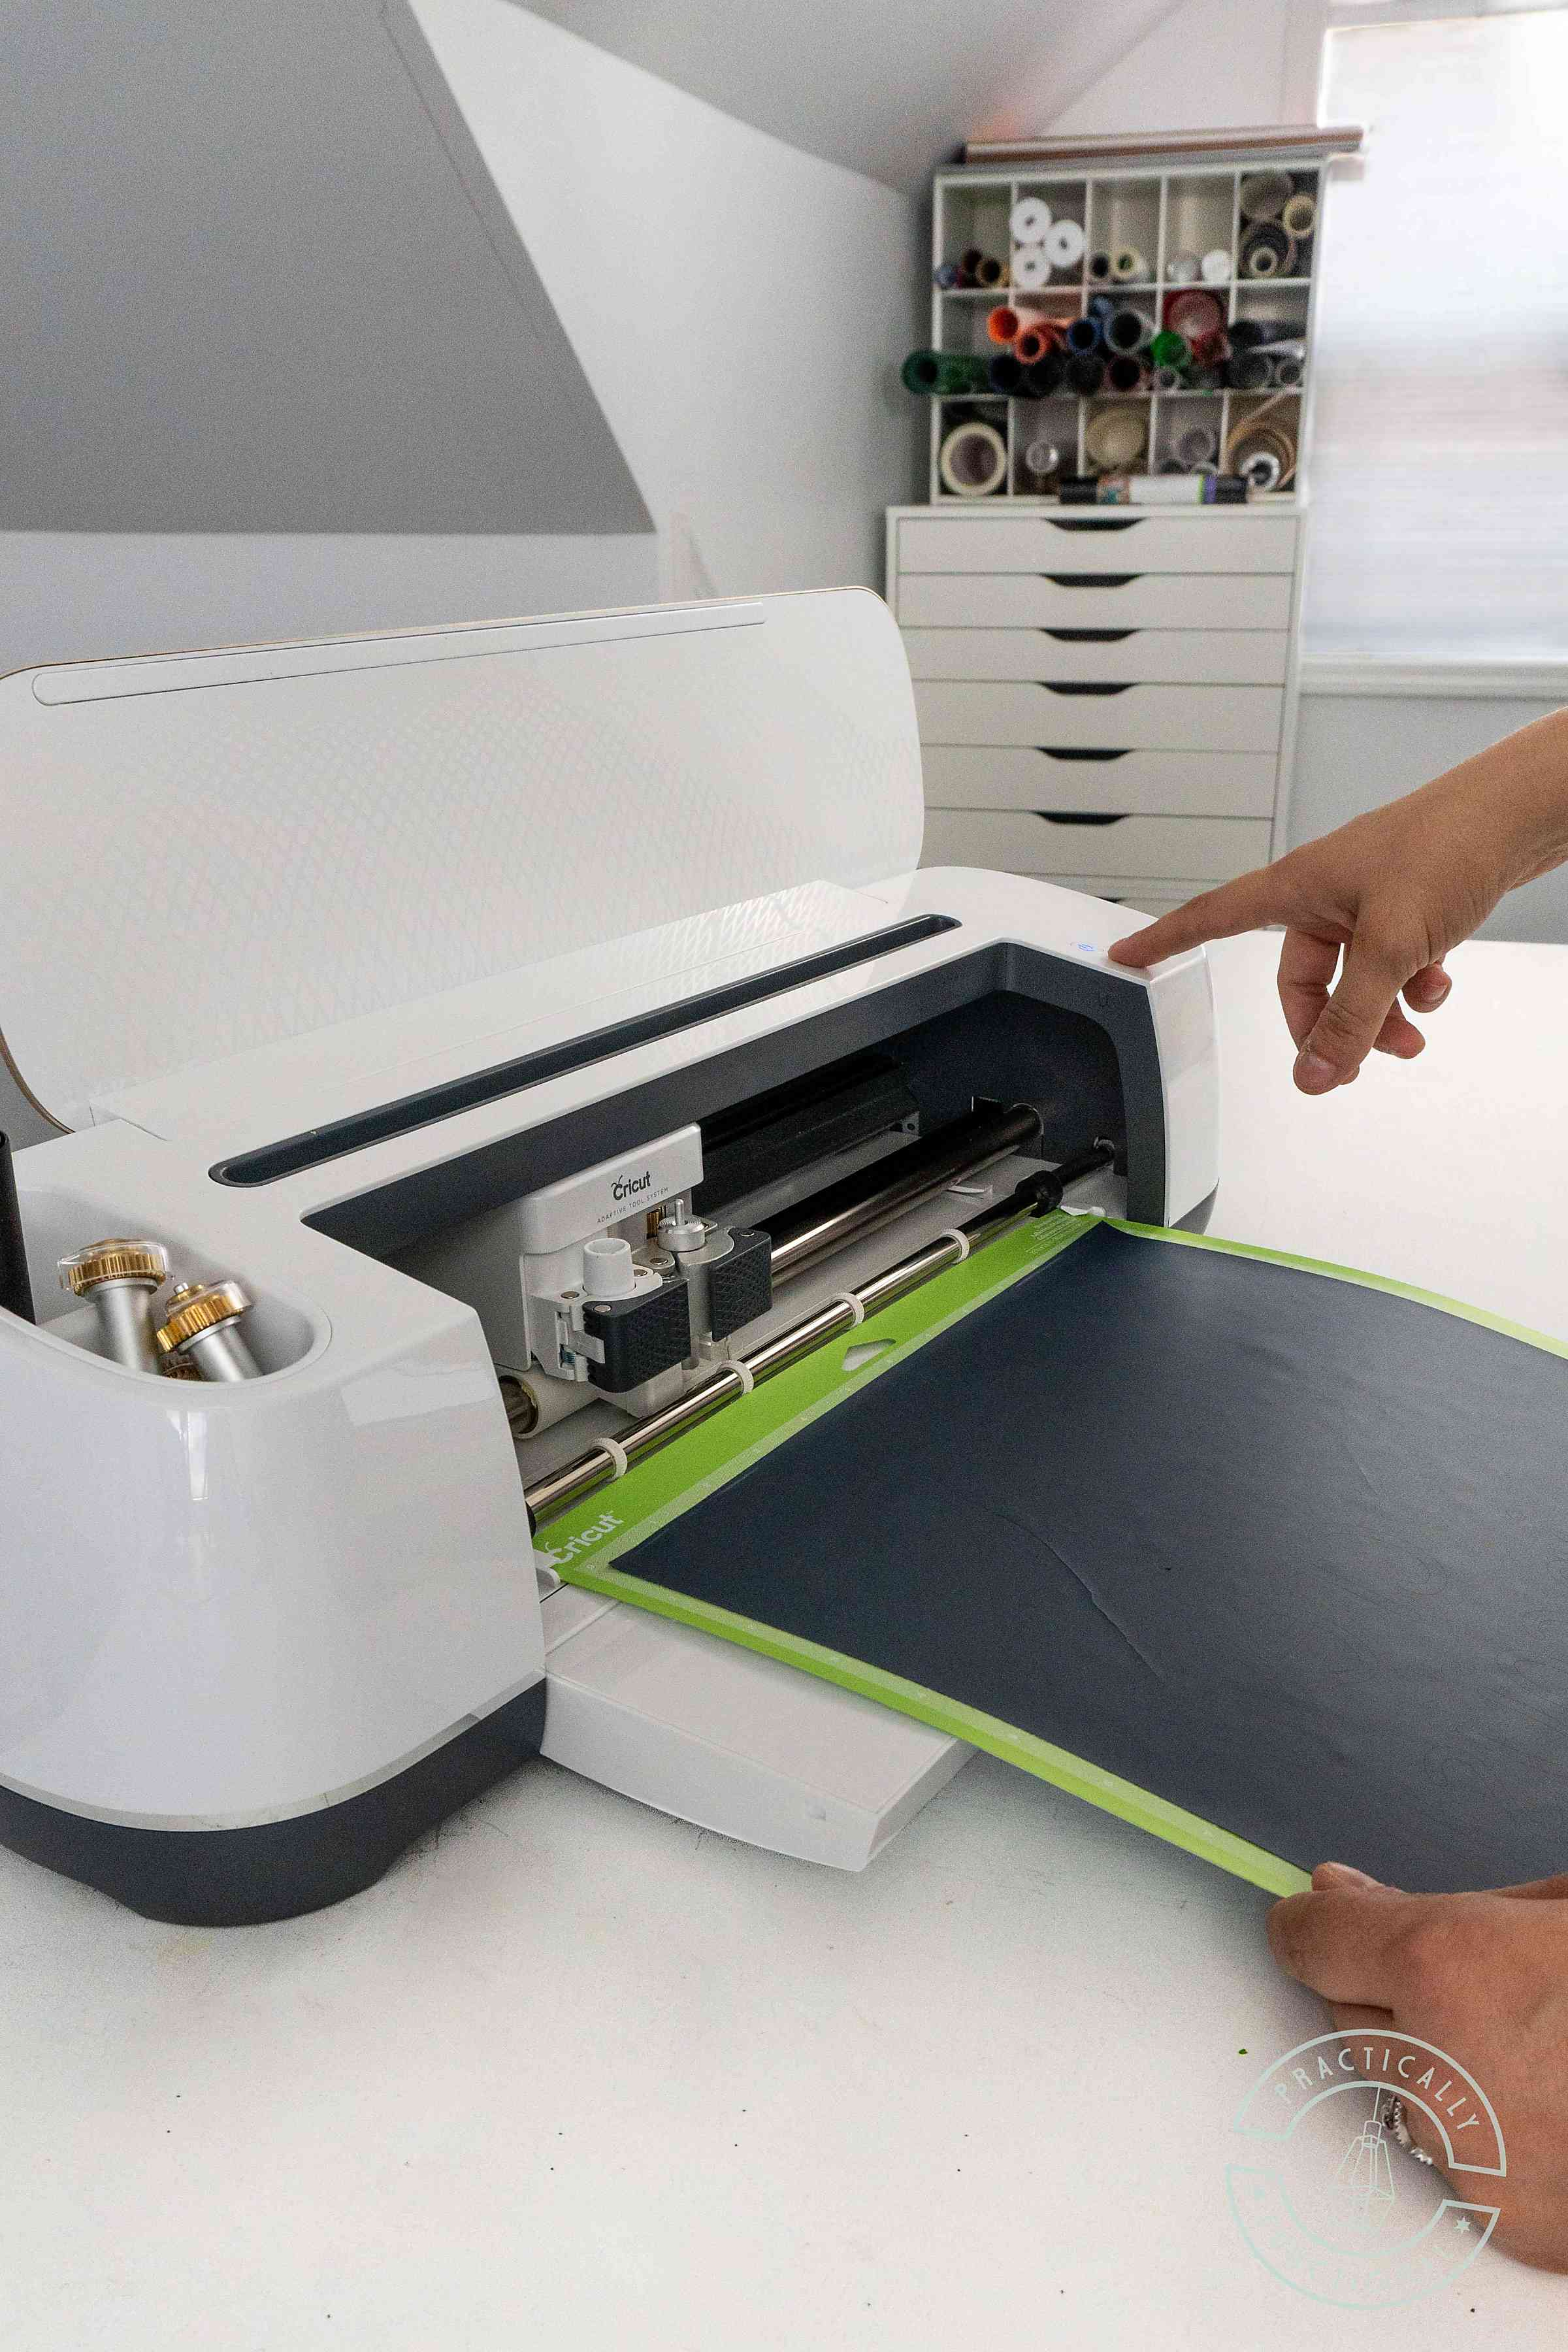 How to use a cricut machine